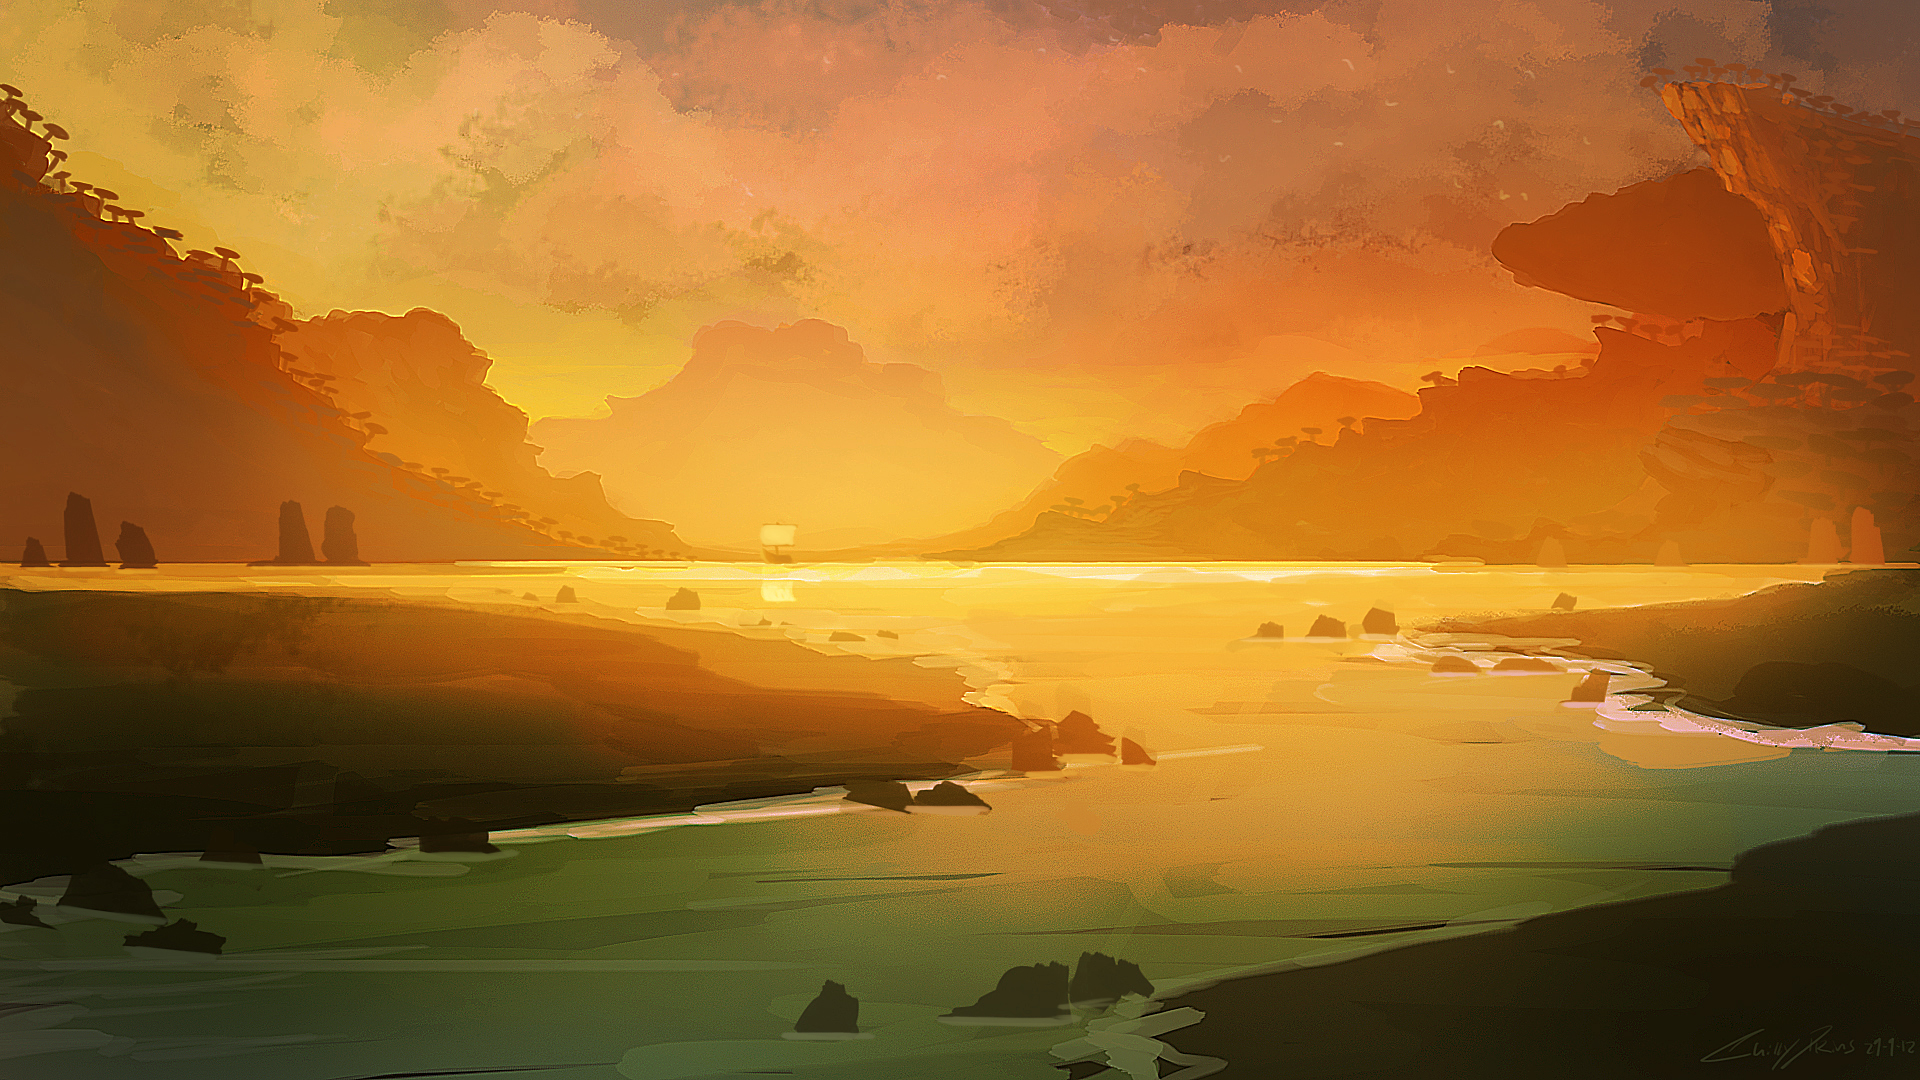 wallpapers art painting - photo #23